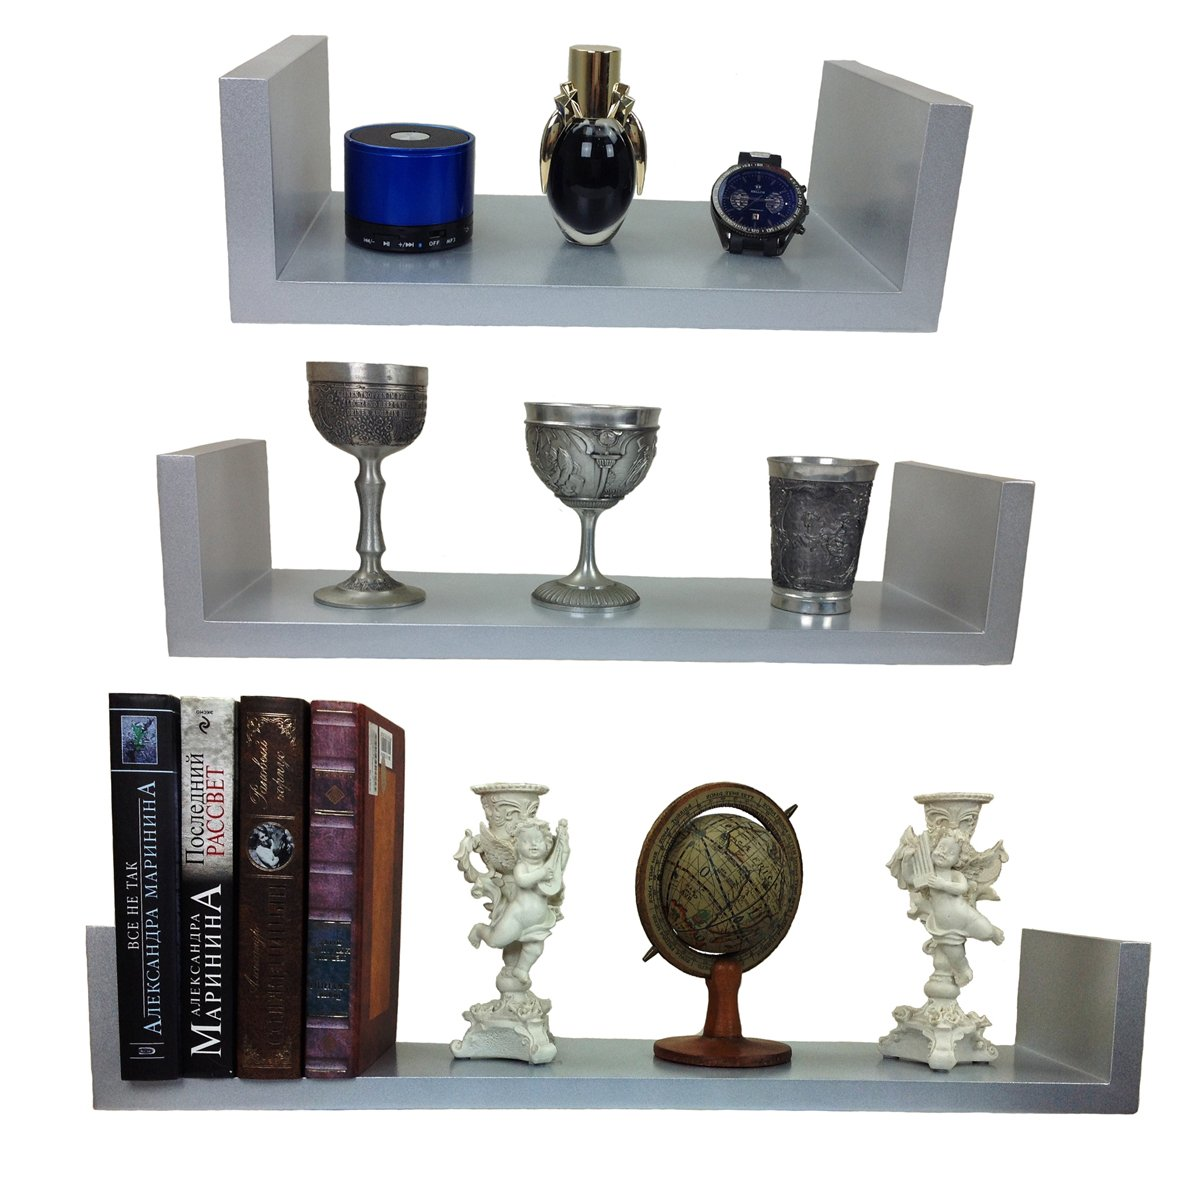 Wandregal bücher design  3 er Set Design Wandregal Bücher CD Regal Cube in verschiedene ...